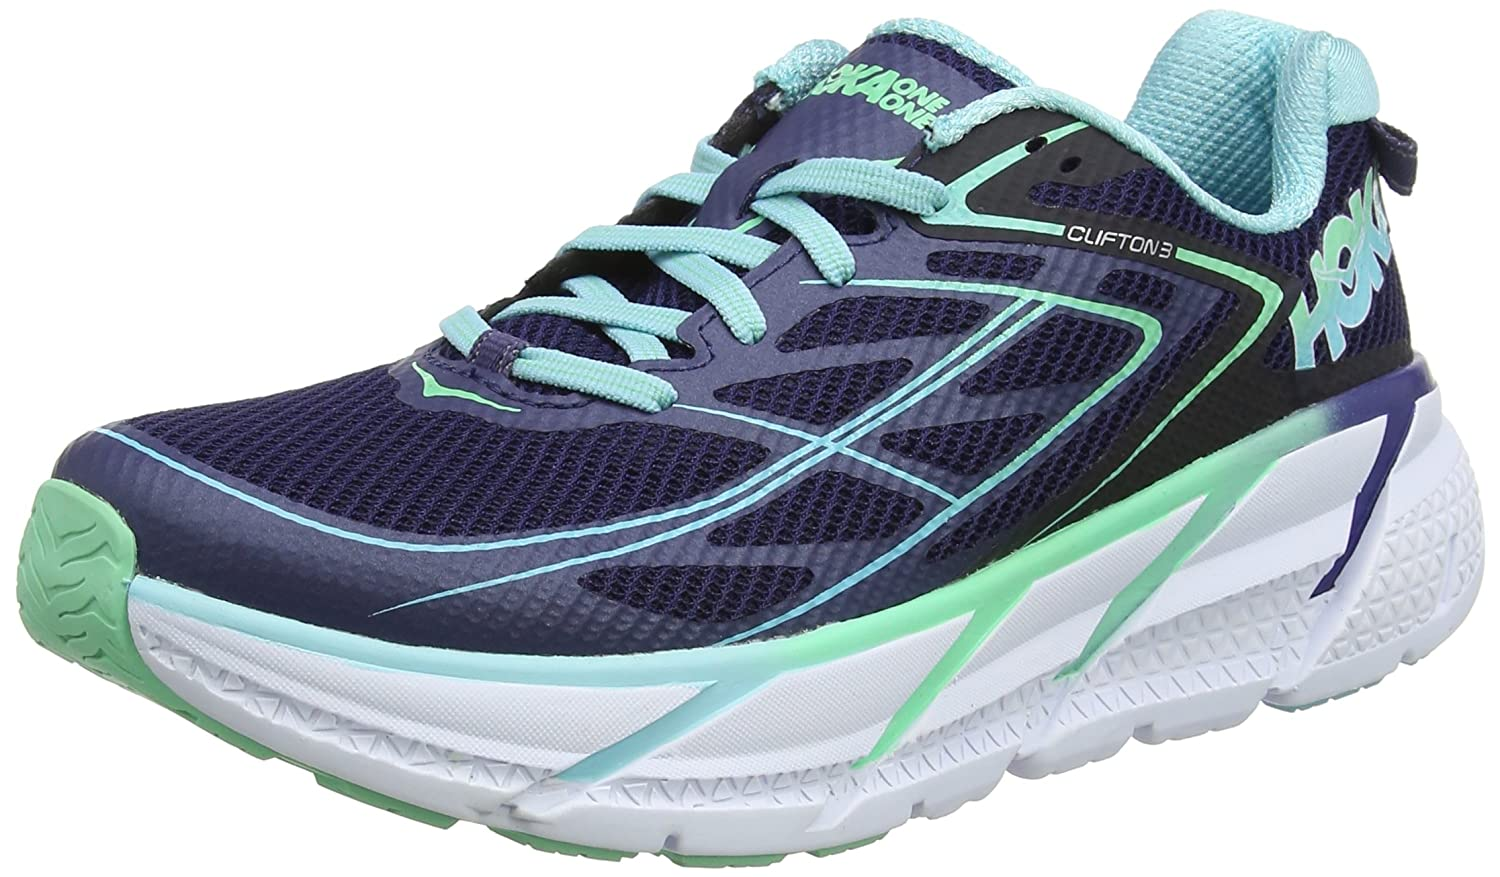 Hoka Clifton One Damen Clifton Hoka 3 Laufschuhe 414706